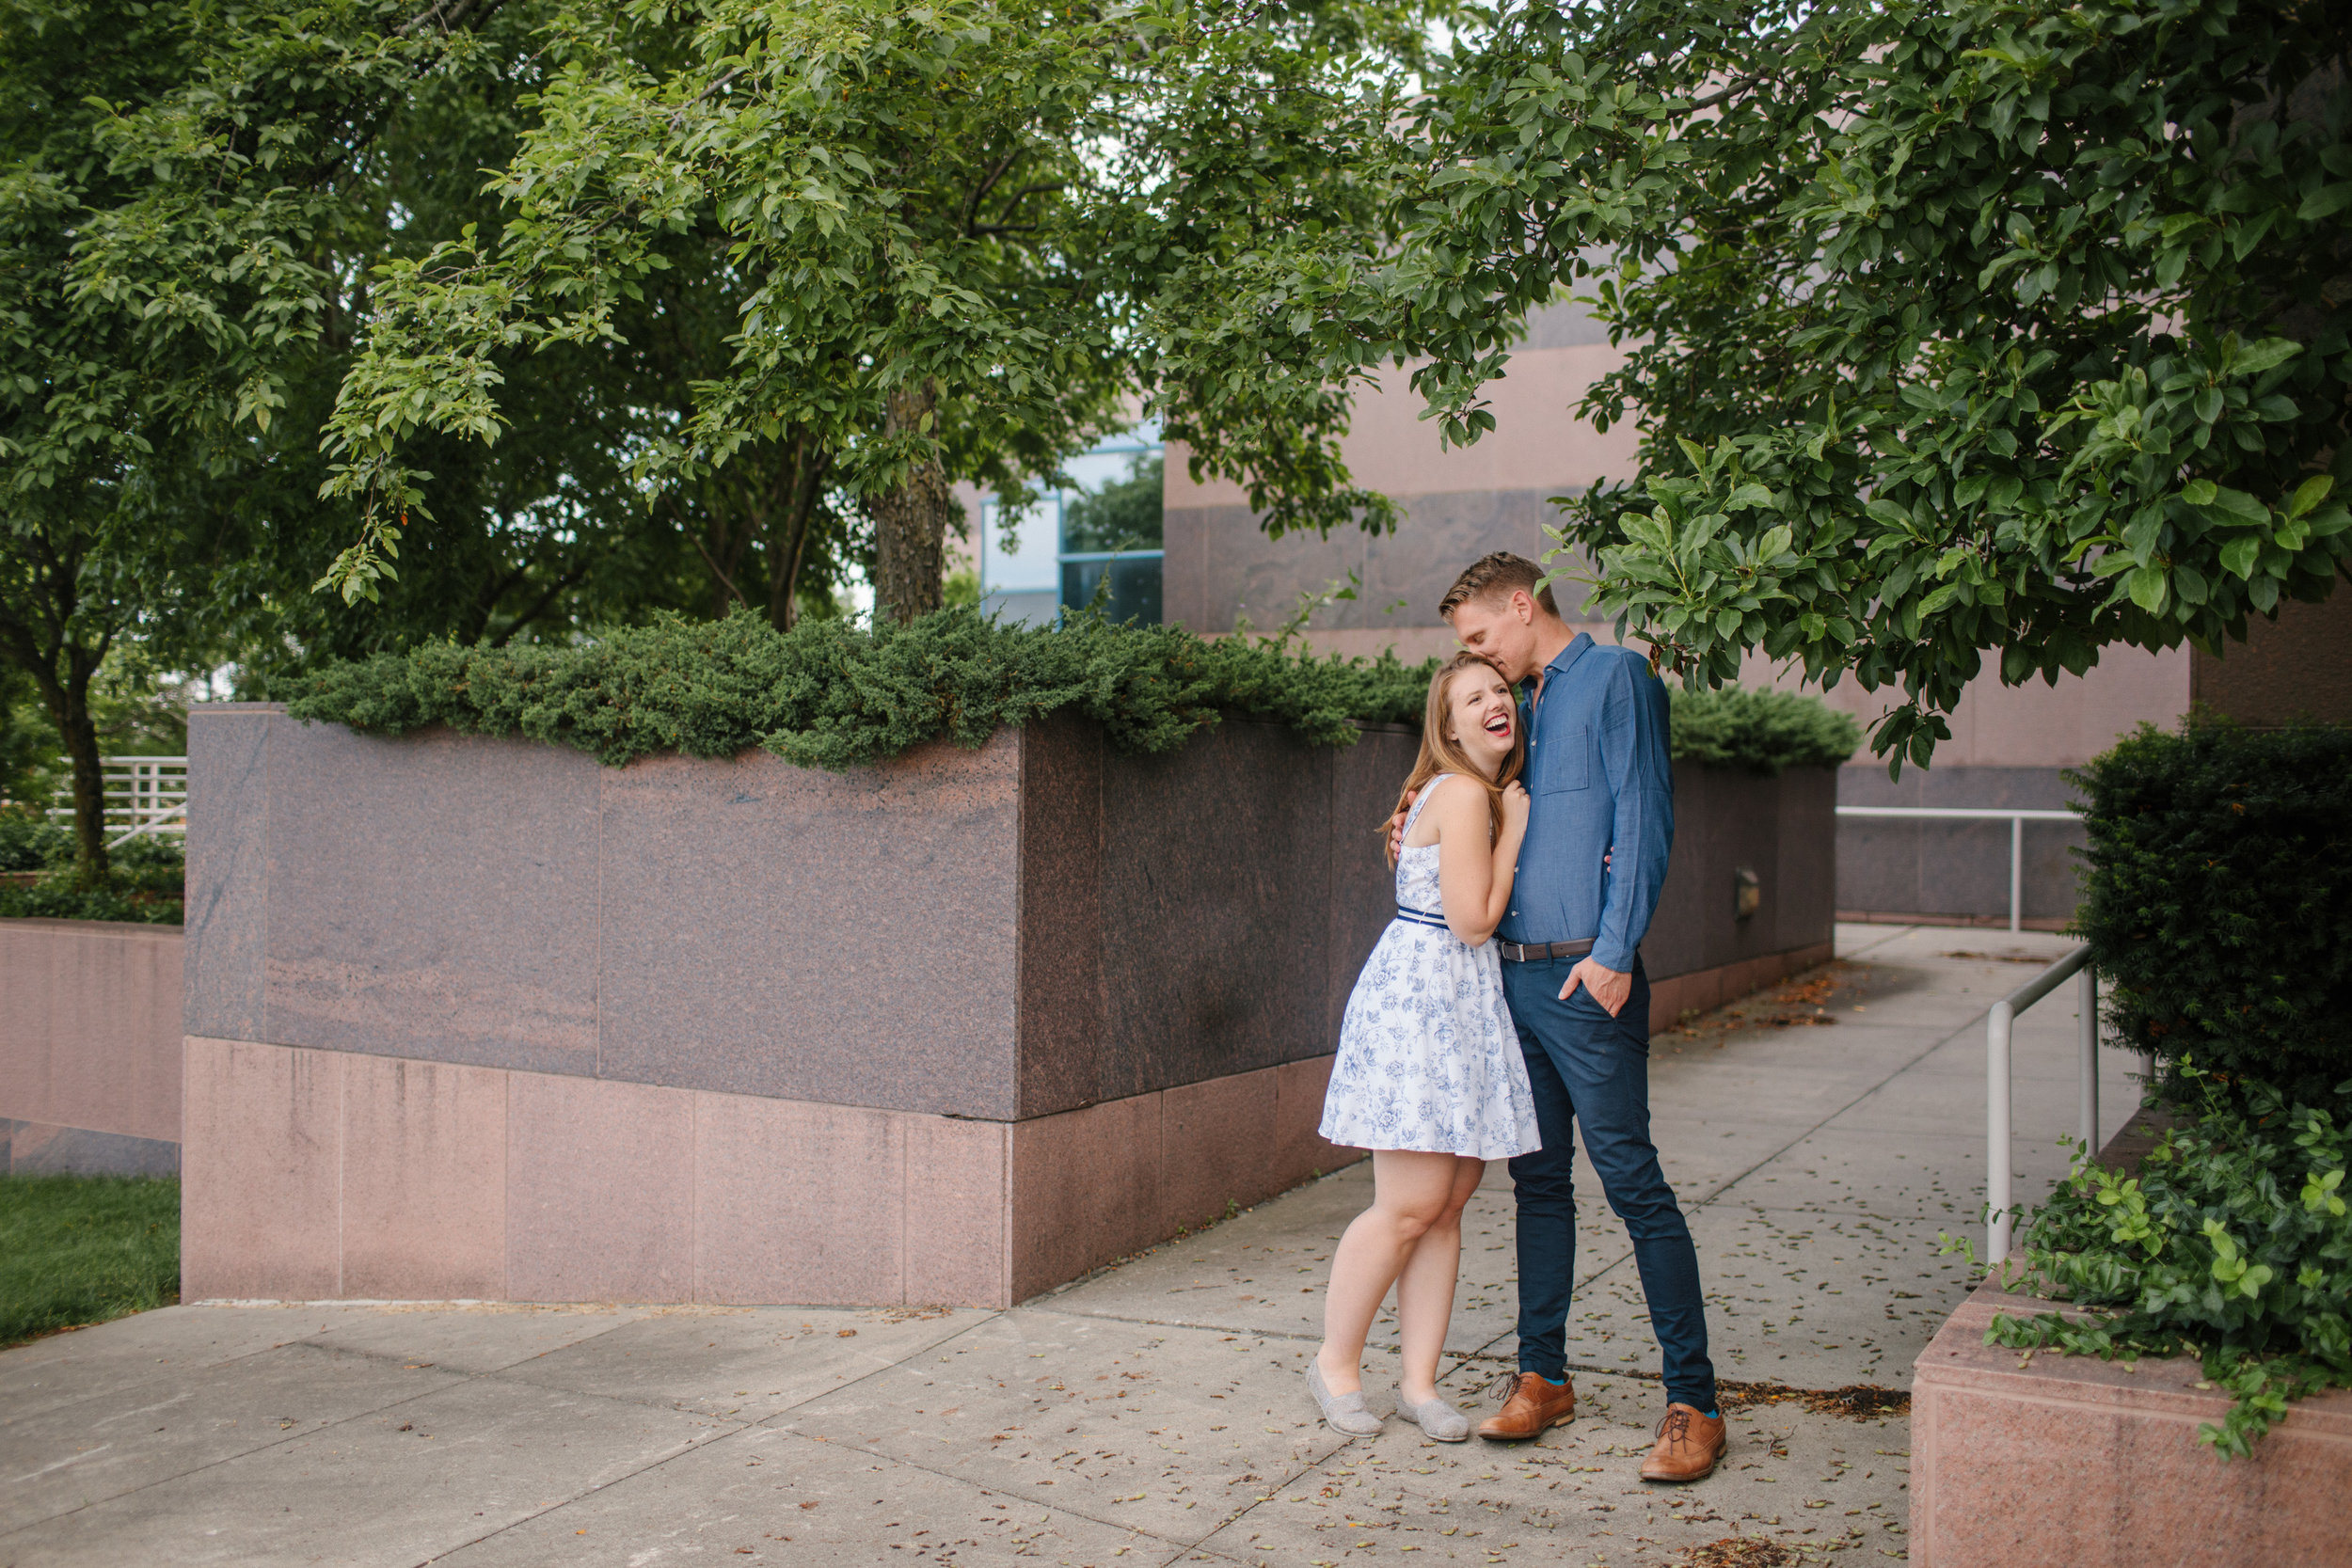 downtown des moines iowa engagement photos libby and joel